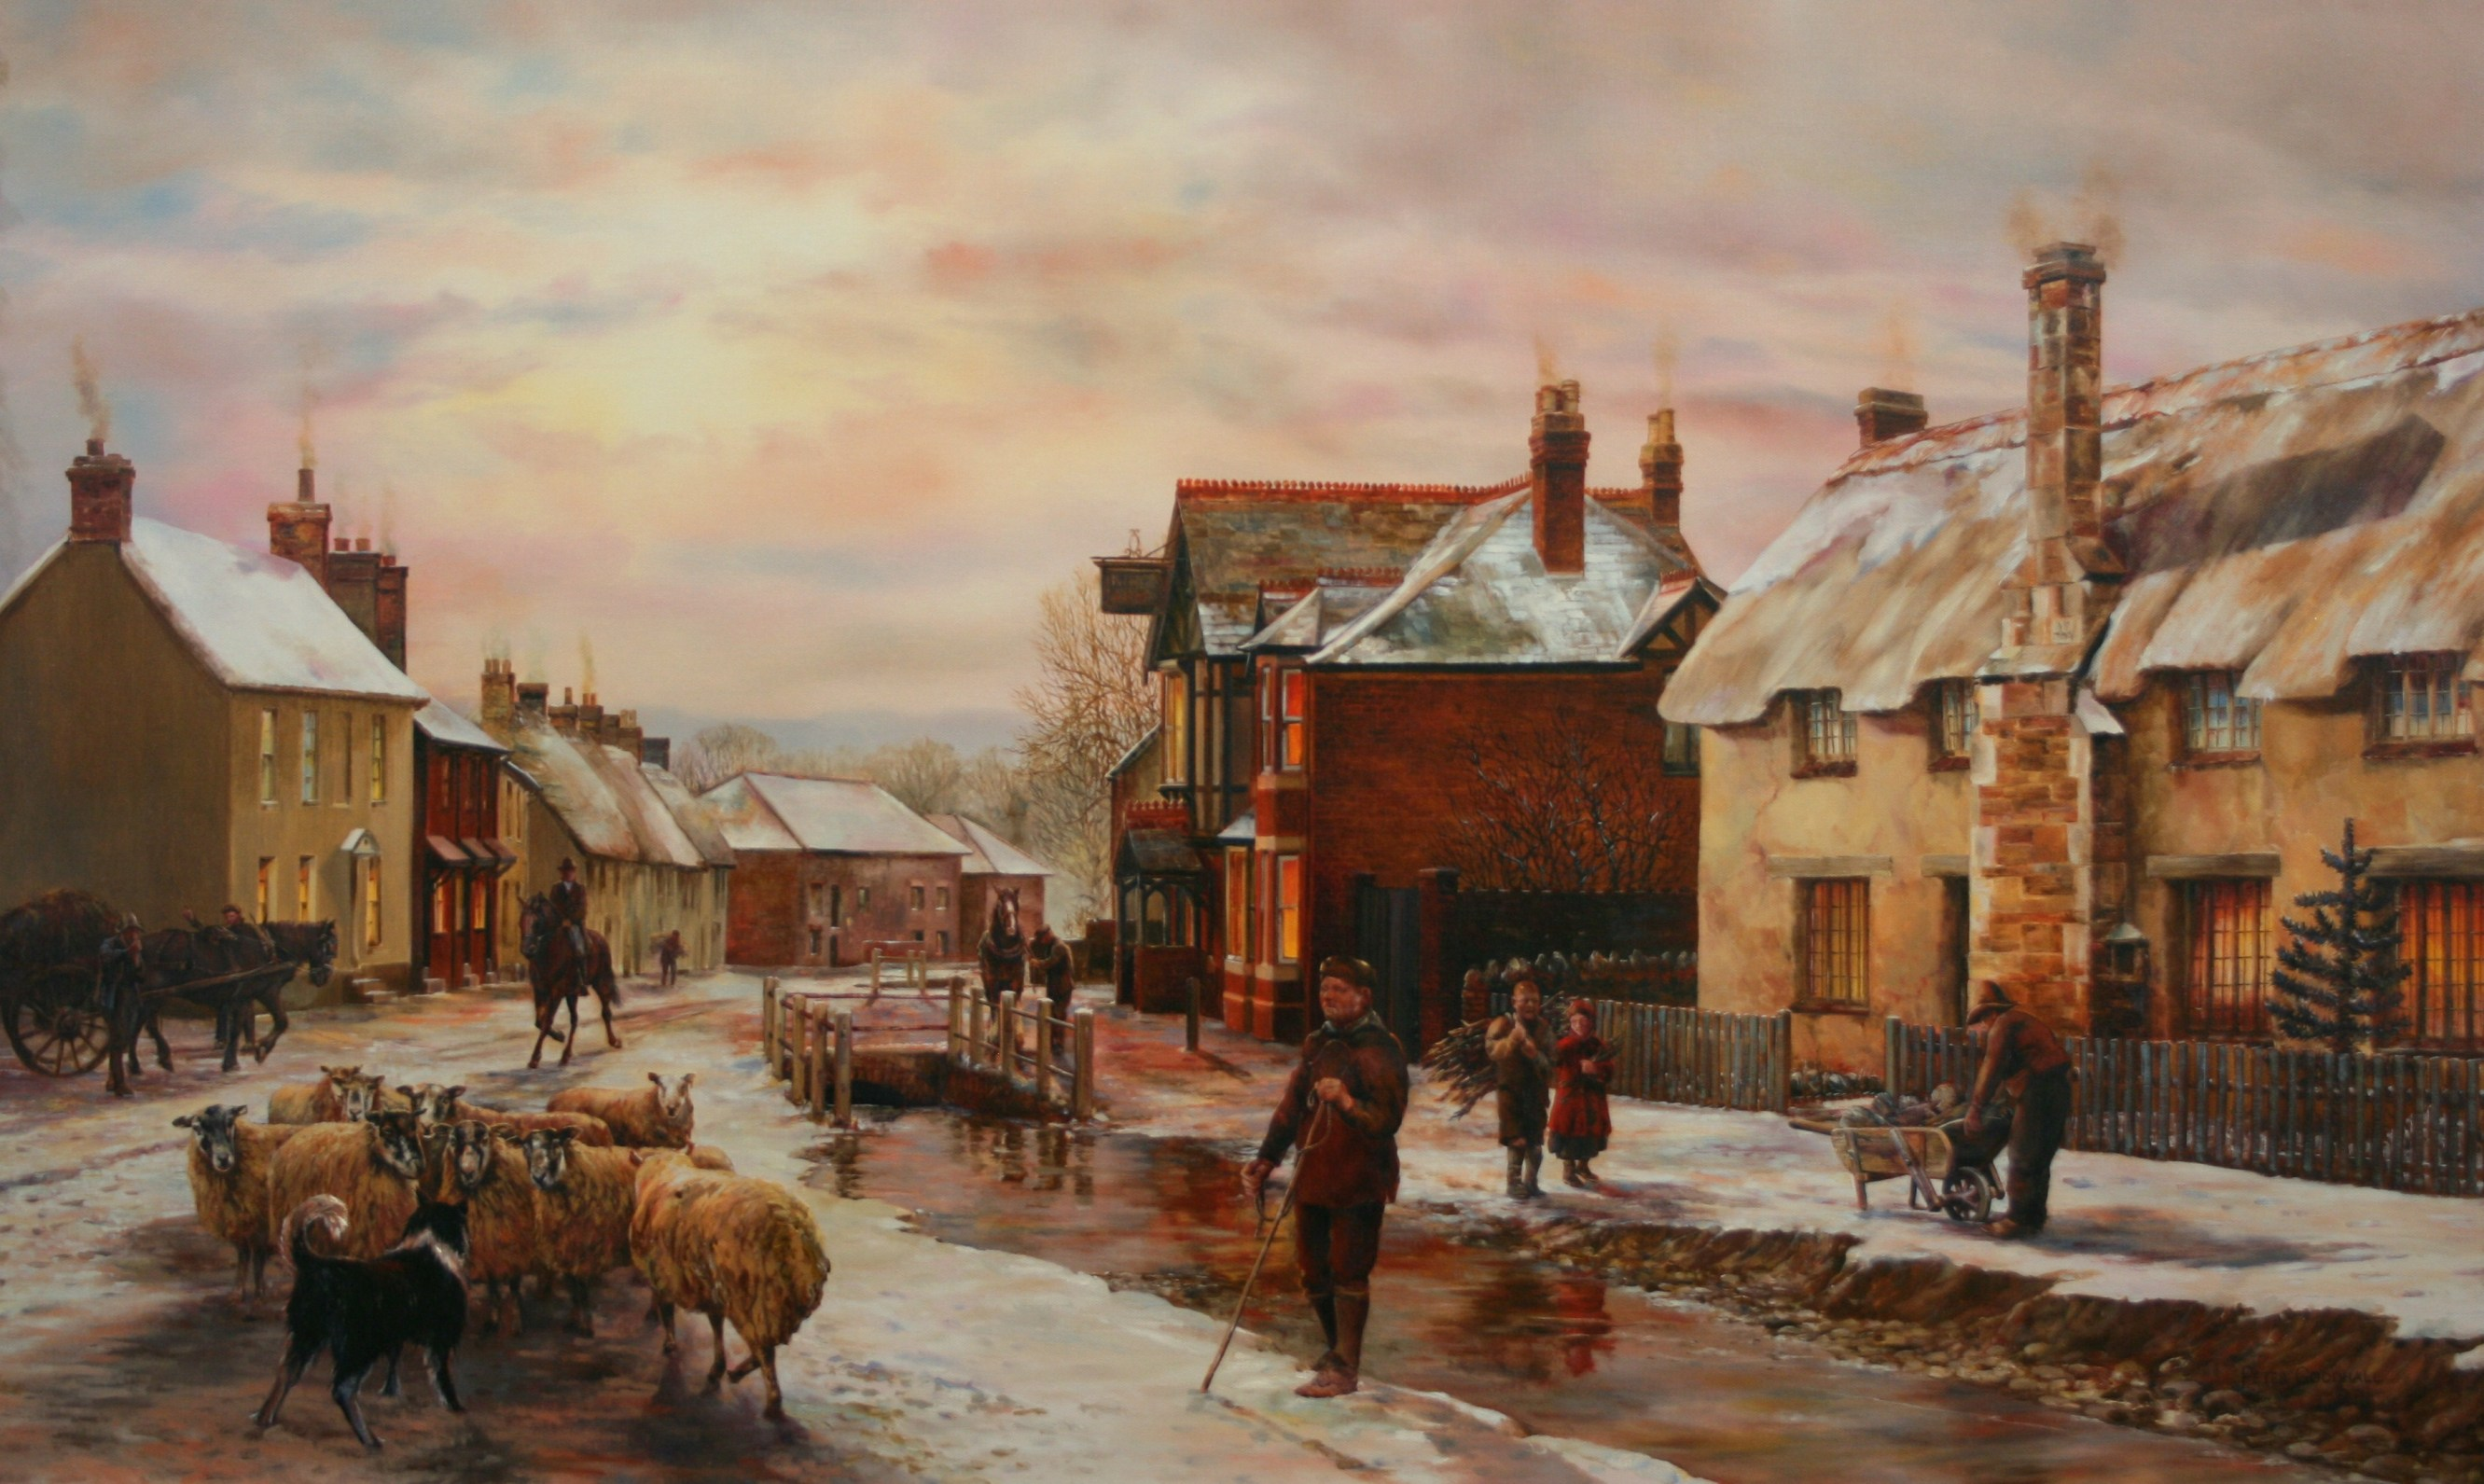 A WINTER'S EVENING, OTTERTON